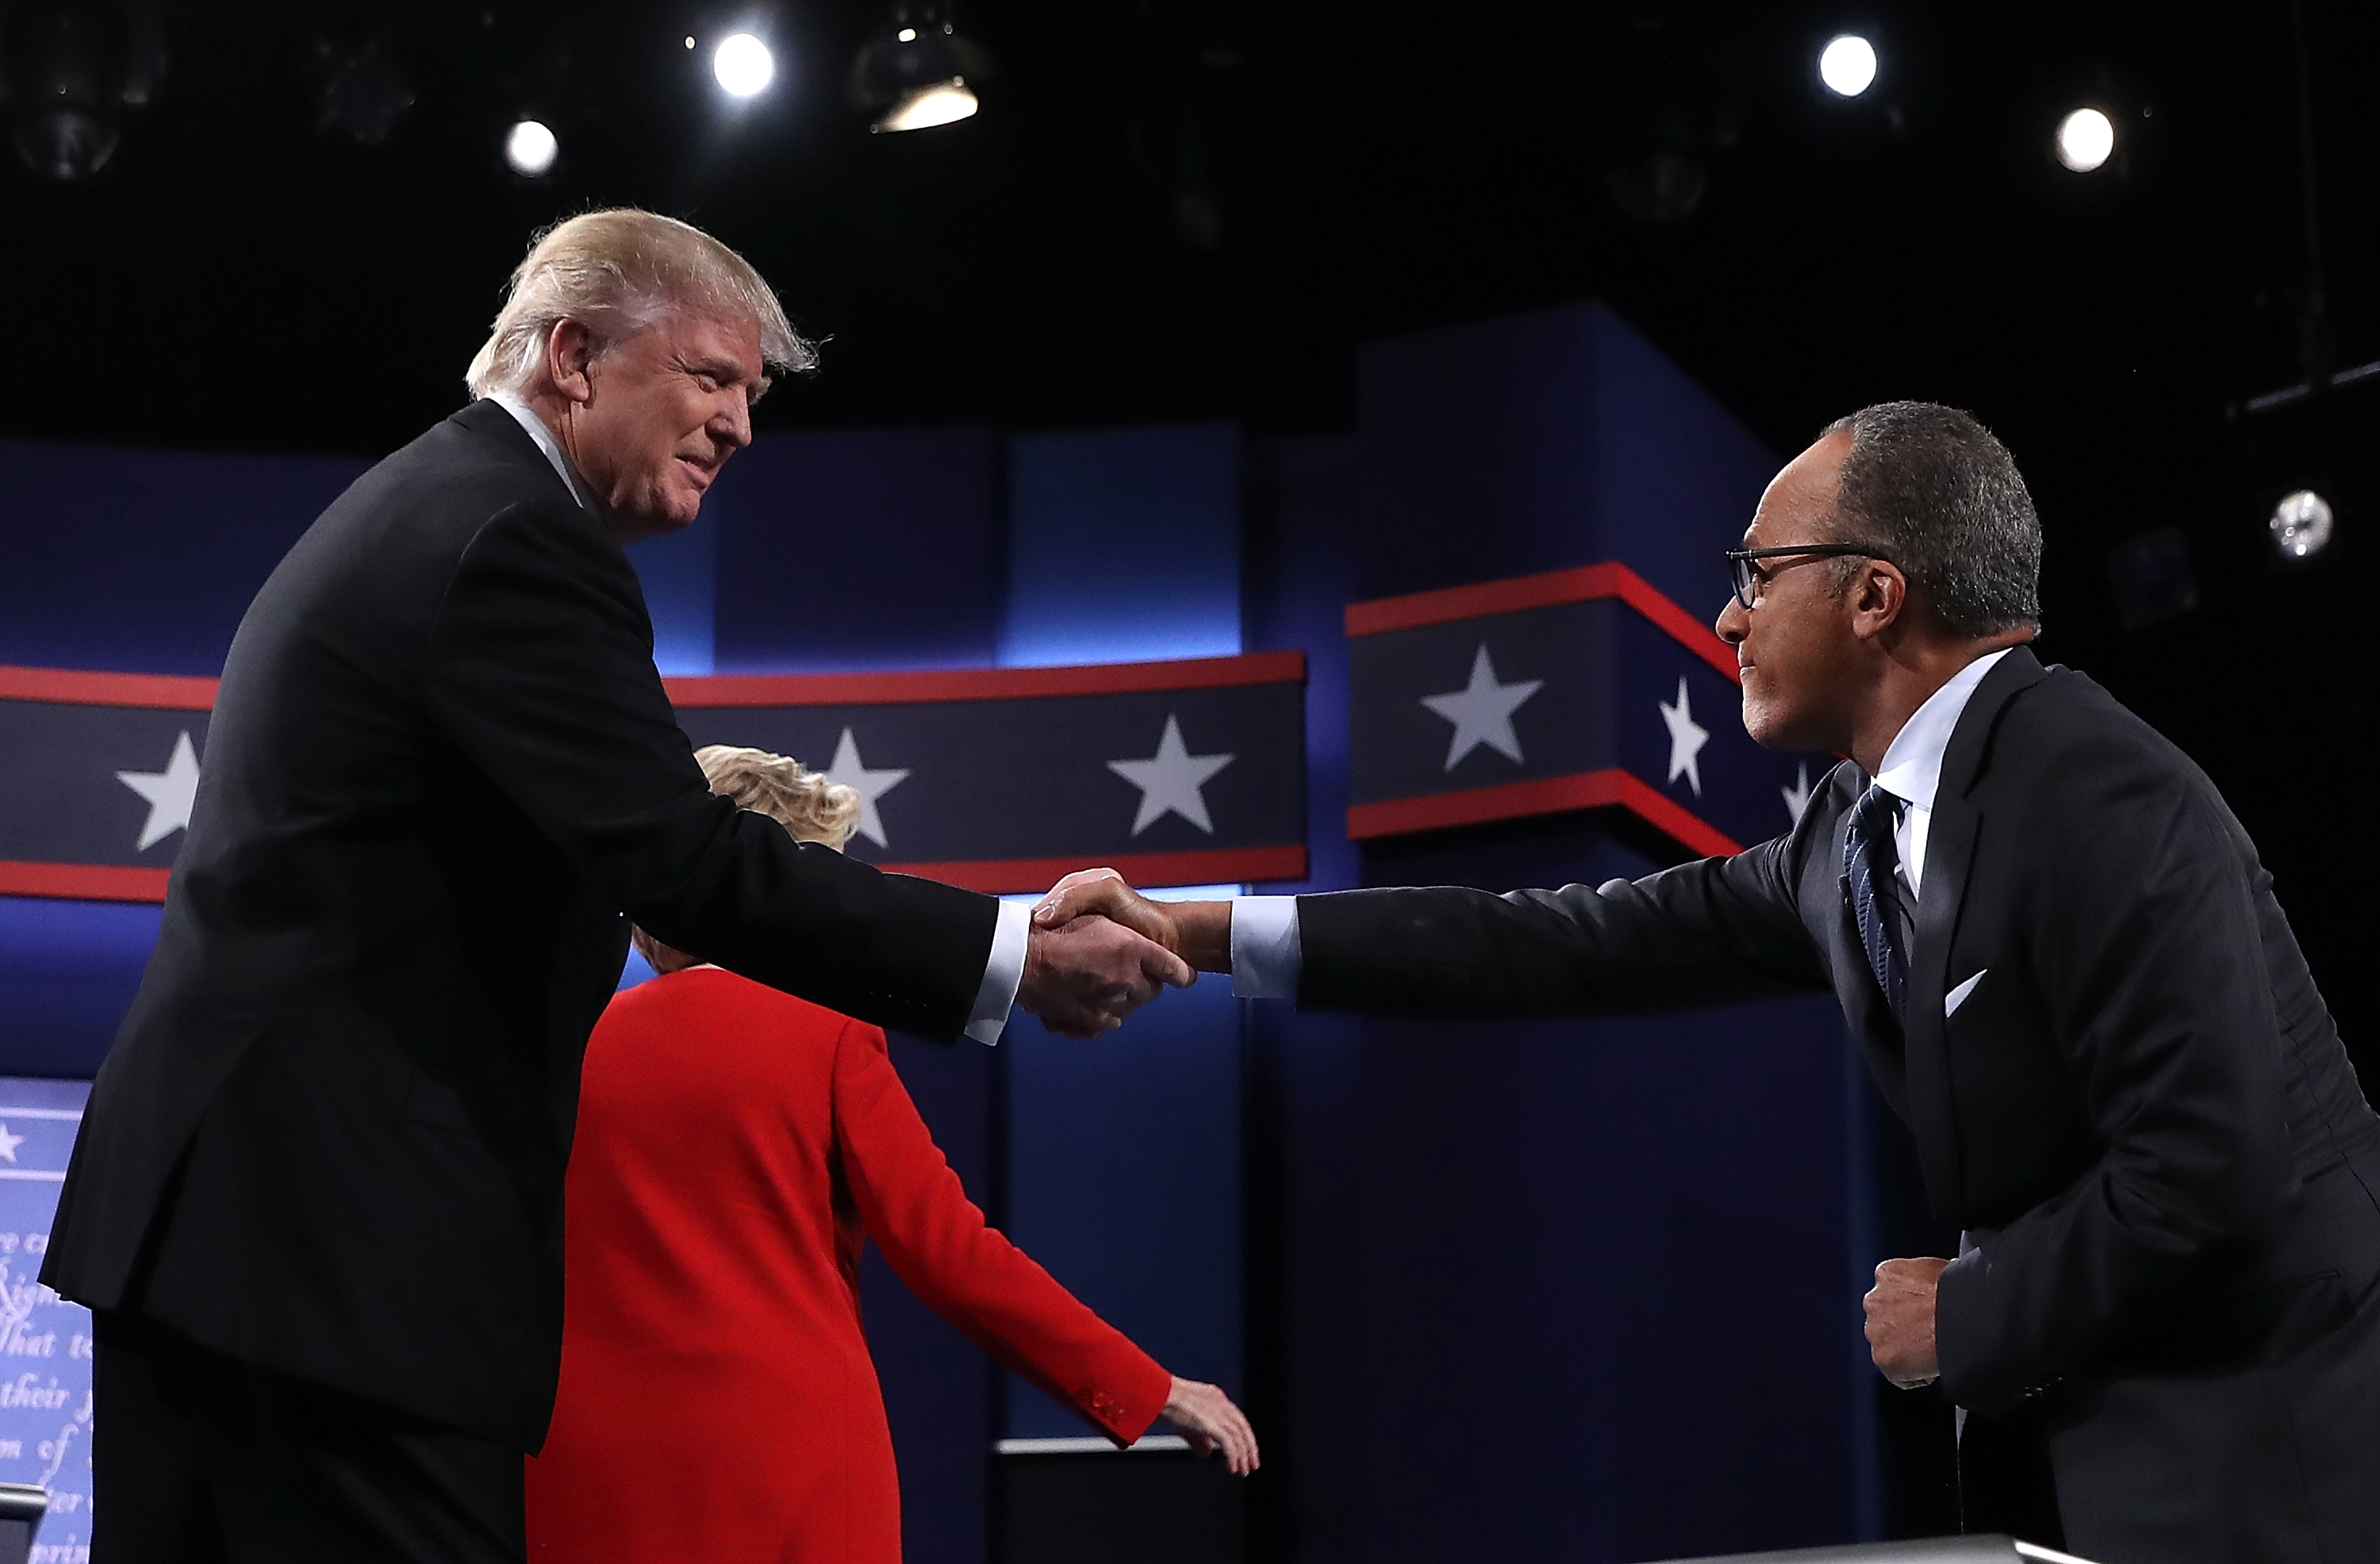 """Donald Trump accuses NBC's Lester Holt of """"fudging the tape"""" referring to his comments about firing James Comey over the Russian investigation"""